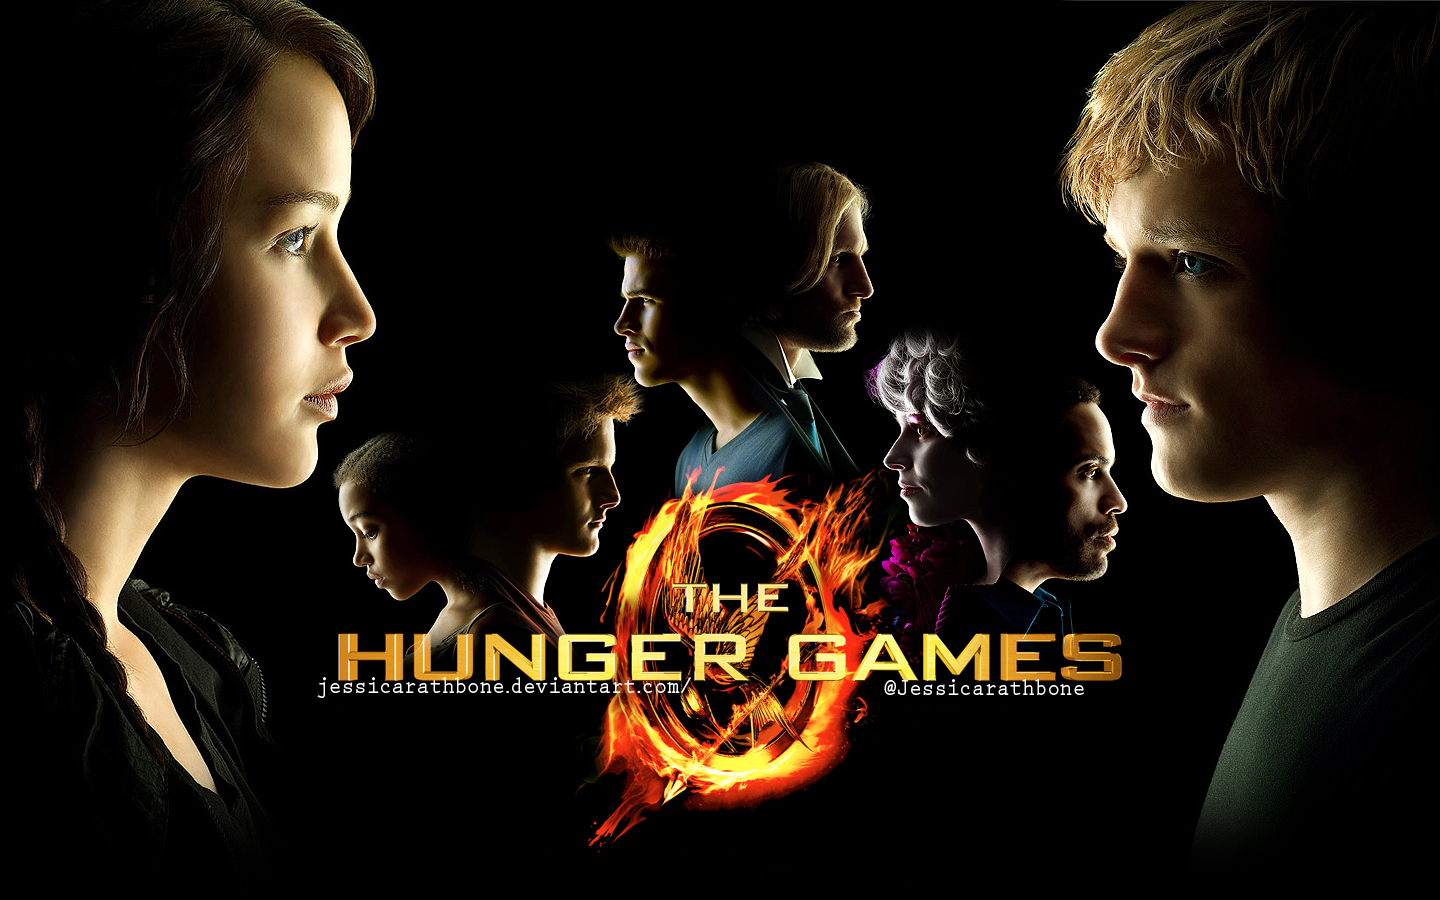 The Hunger Games - The Hunger Games Wallpaper (27627297) - Fanpop ...